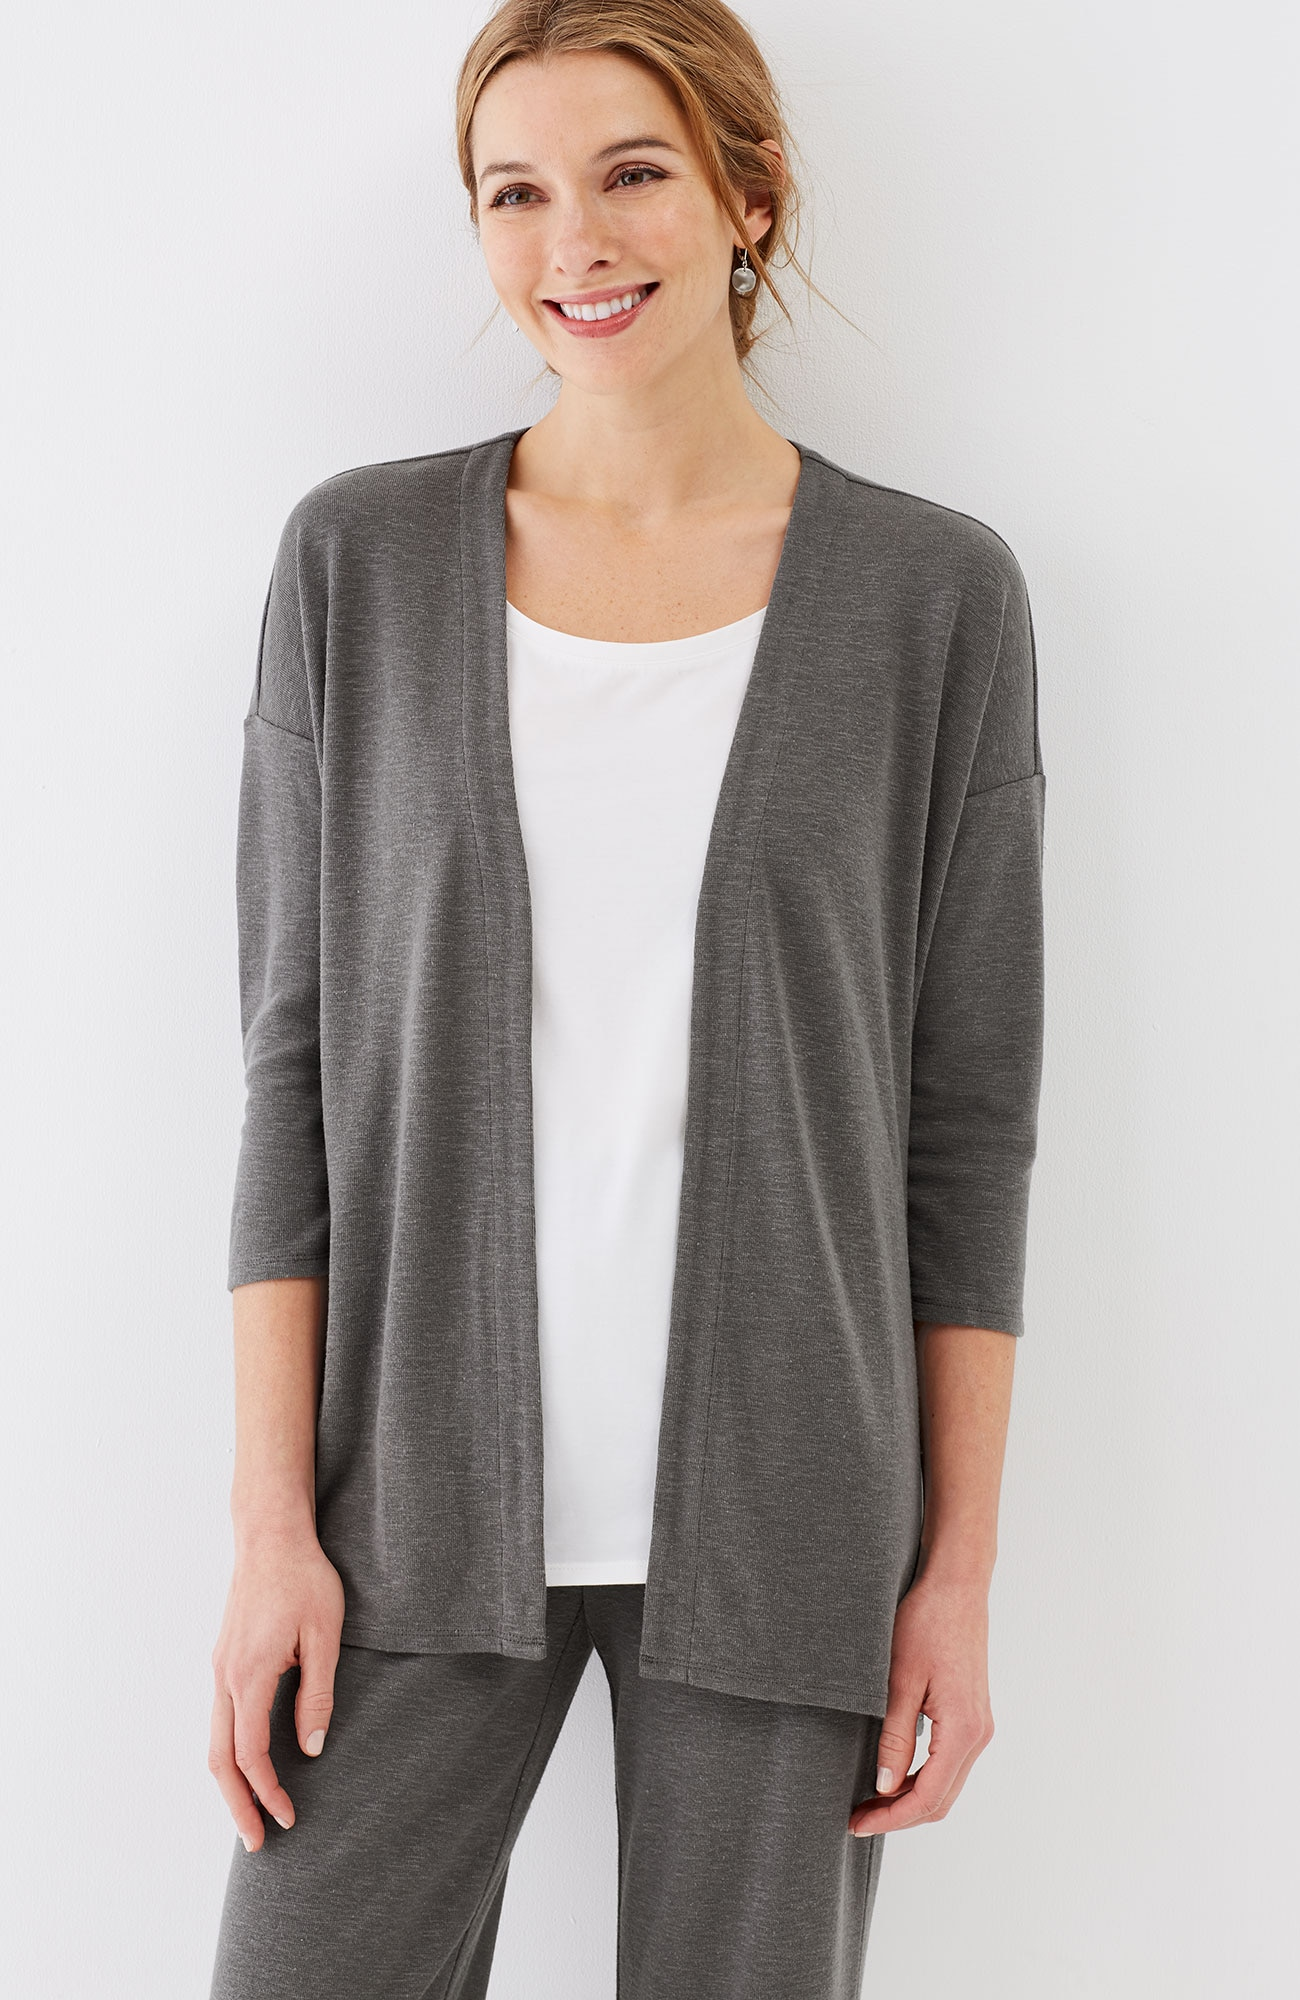 Pure Jill Tencel®-Soft knit dipped-hem jacket